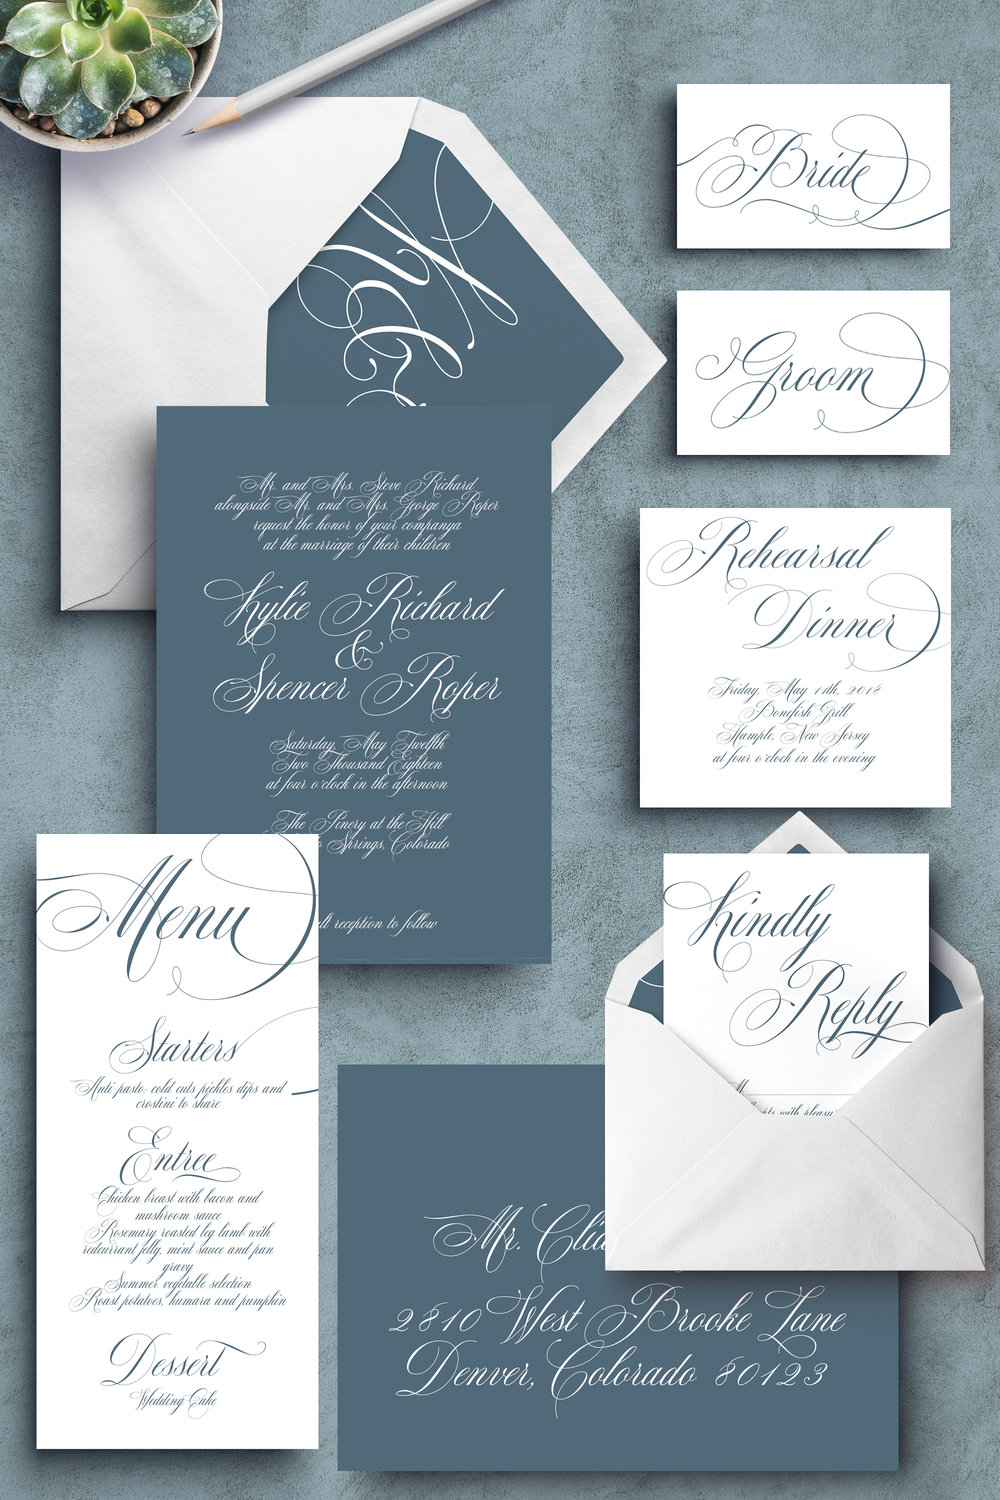 Custom Wedding Invitations. Elegant Wedding Invitations. Classic wedding Invitations. Elegant wedding invitations. Slate blue invitations